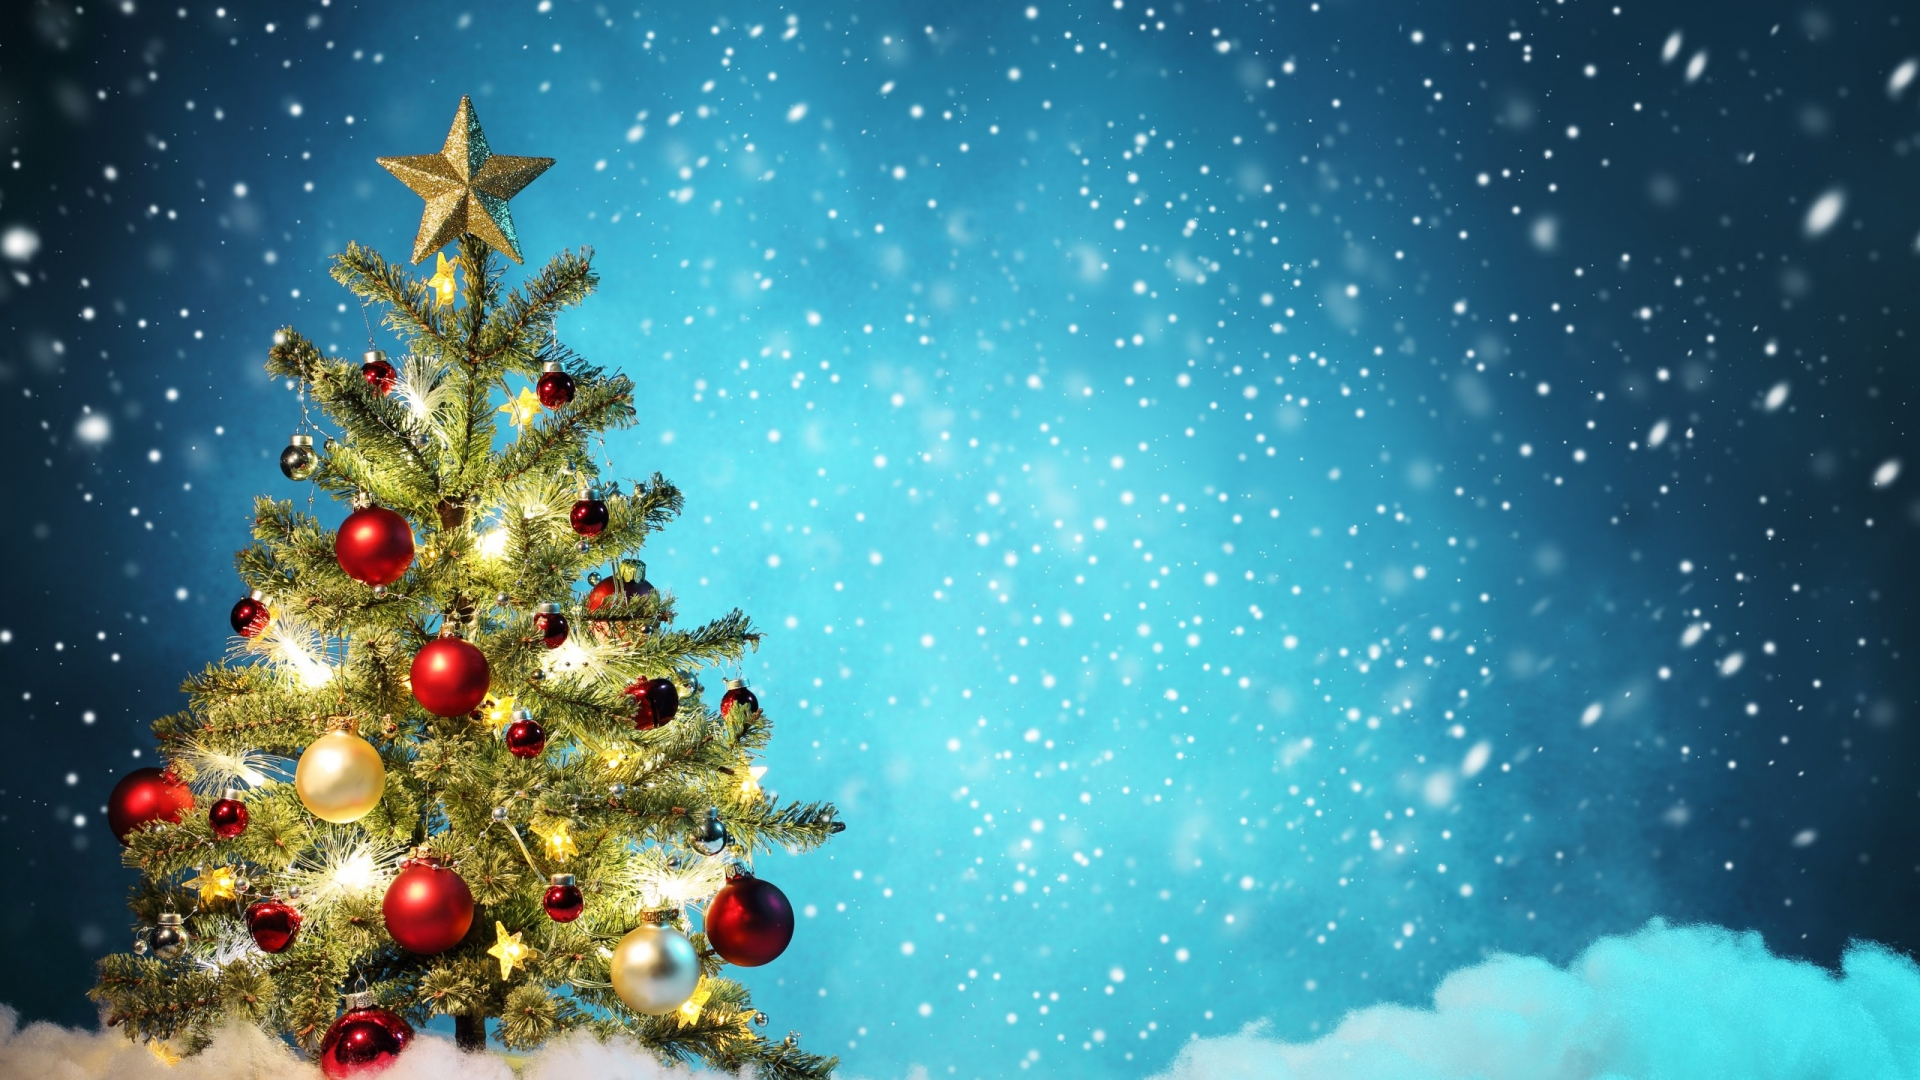 Little Christmas Tree Wallpaper For Desktop